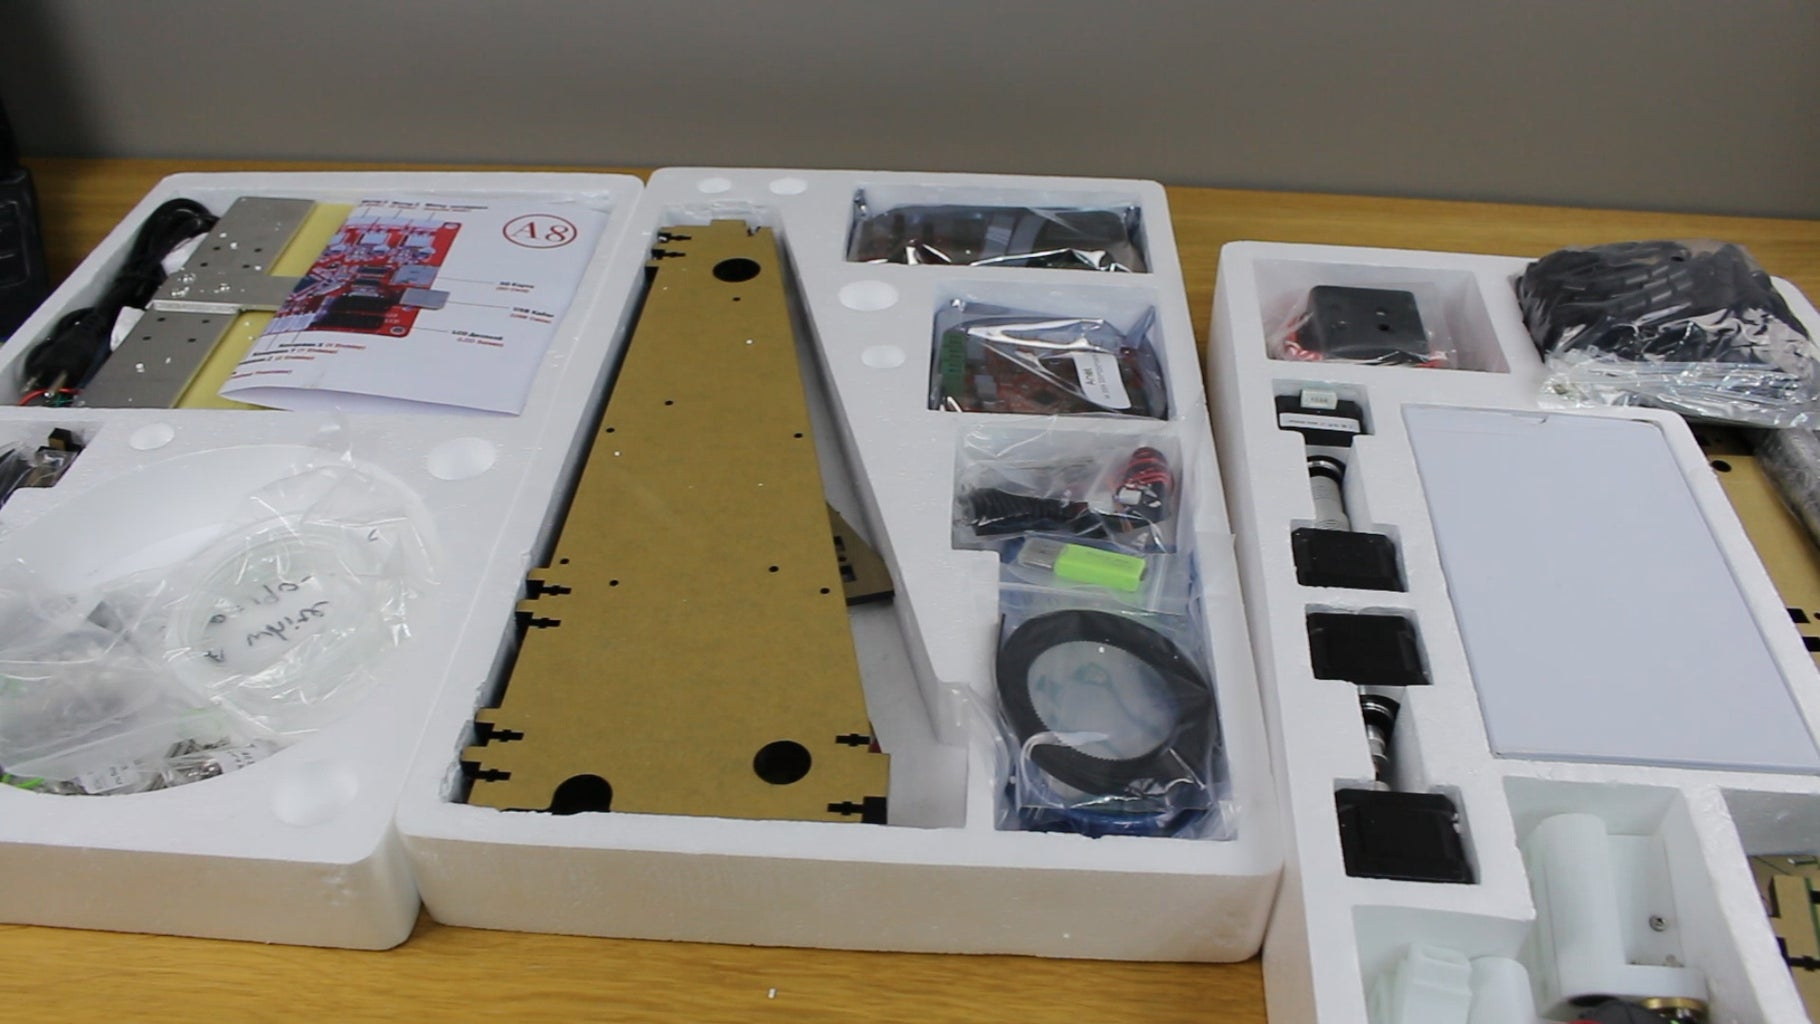 Unboxing/Assembly